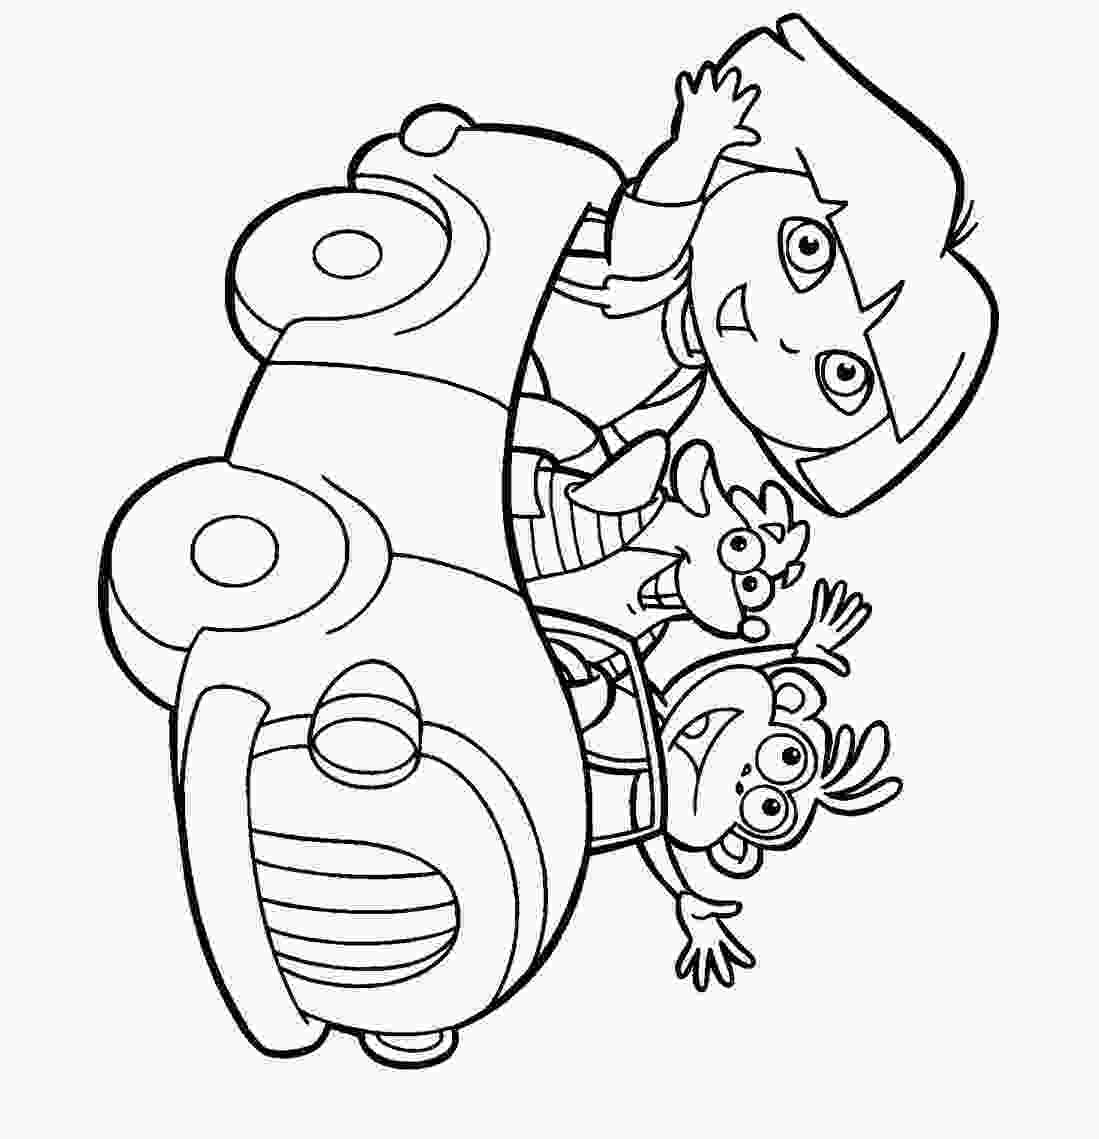 dora colouring pages printable dora colouring pictures coloring pages to print